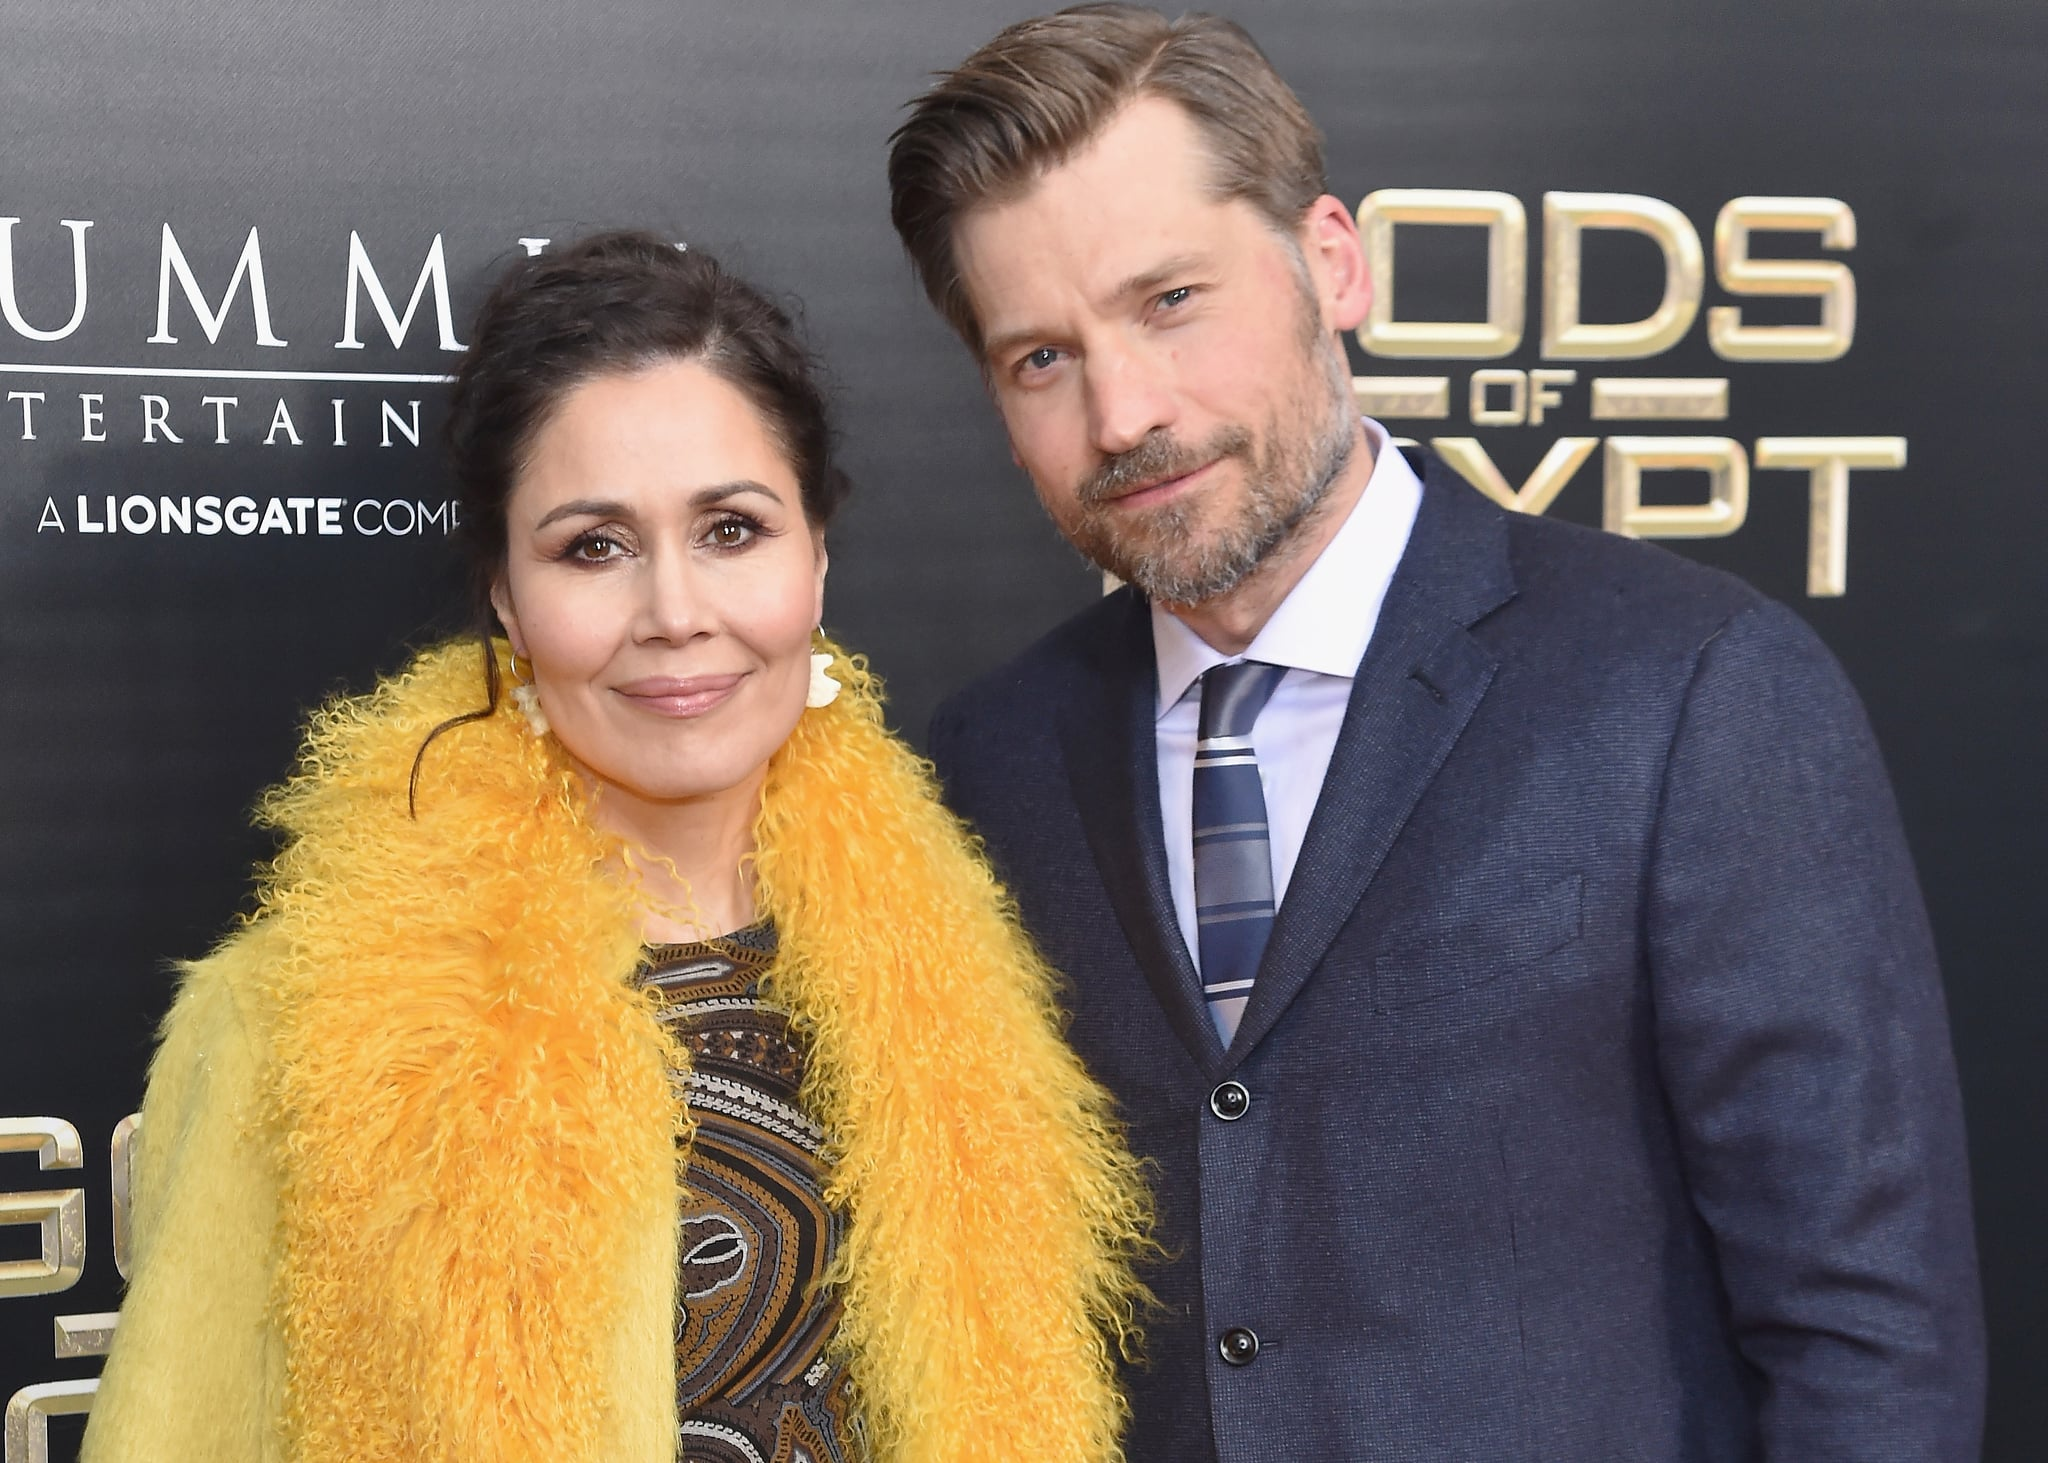 Nikolaj Coster Waldau and his wife attending an event show